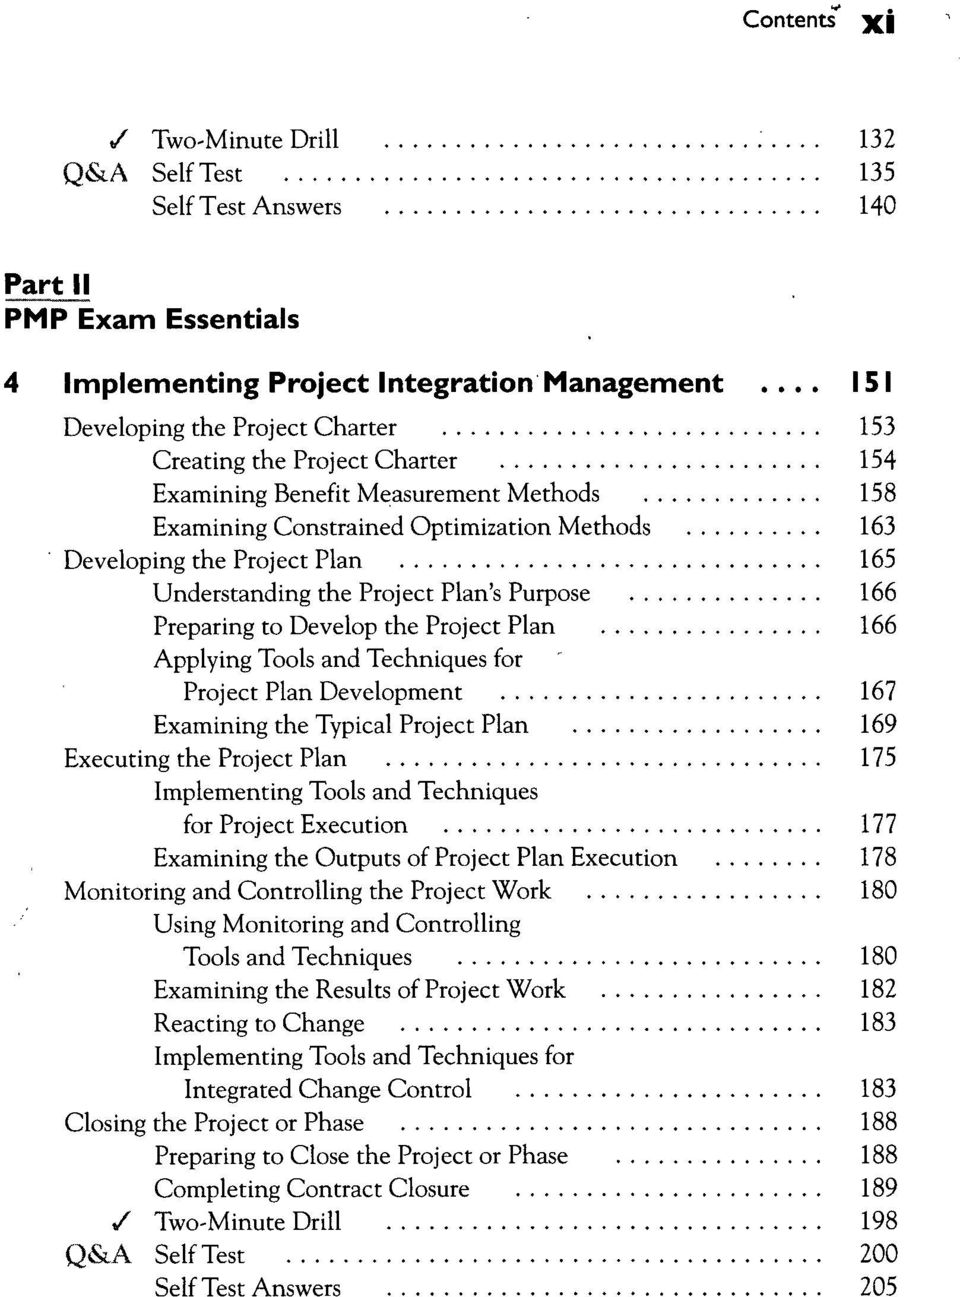 Pmp Study Guide Pdf Free Download